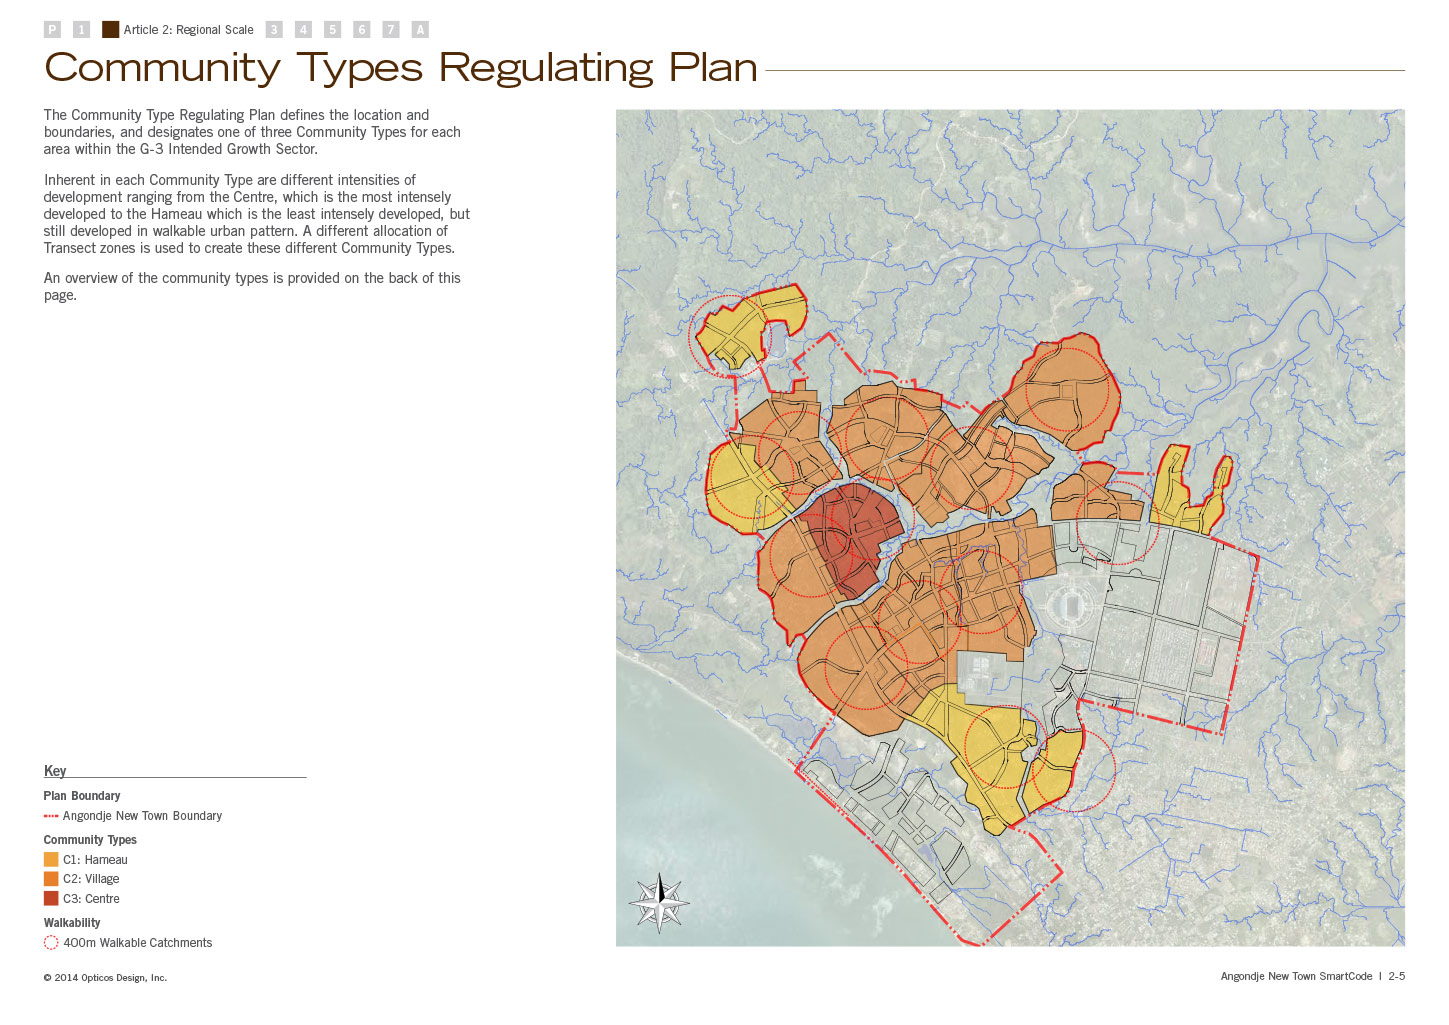 Community Types Regulating Plan